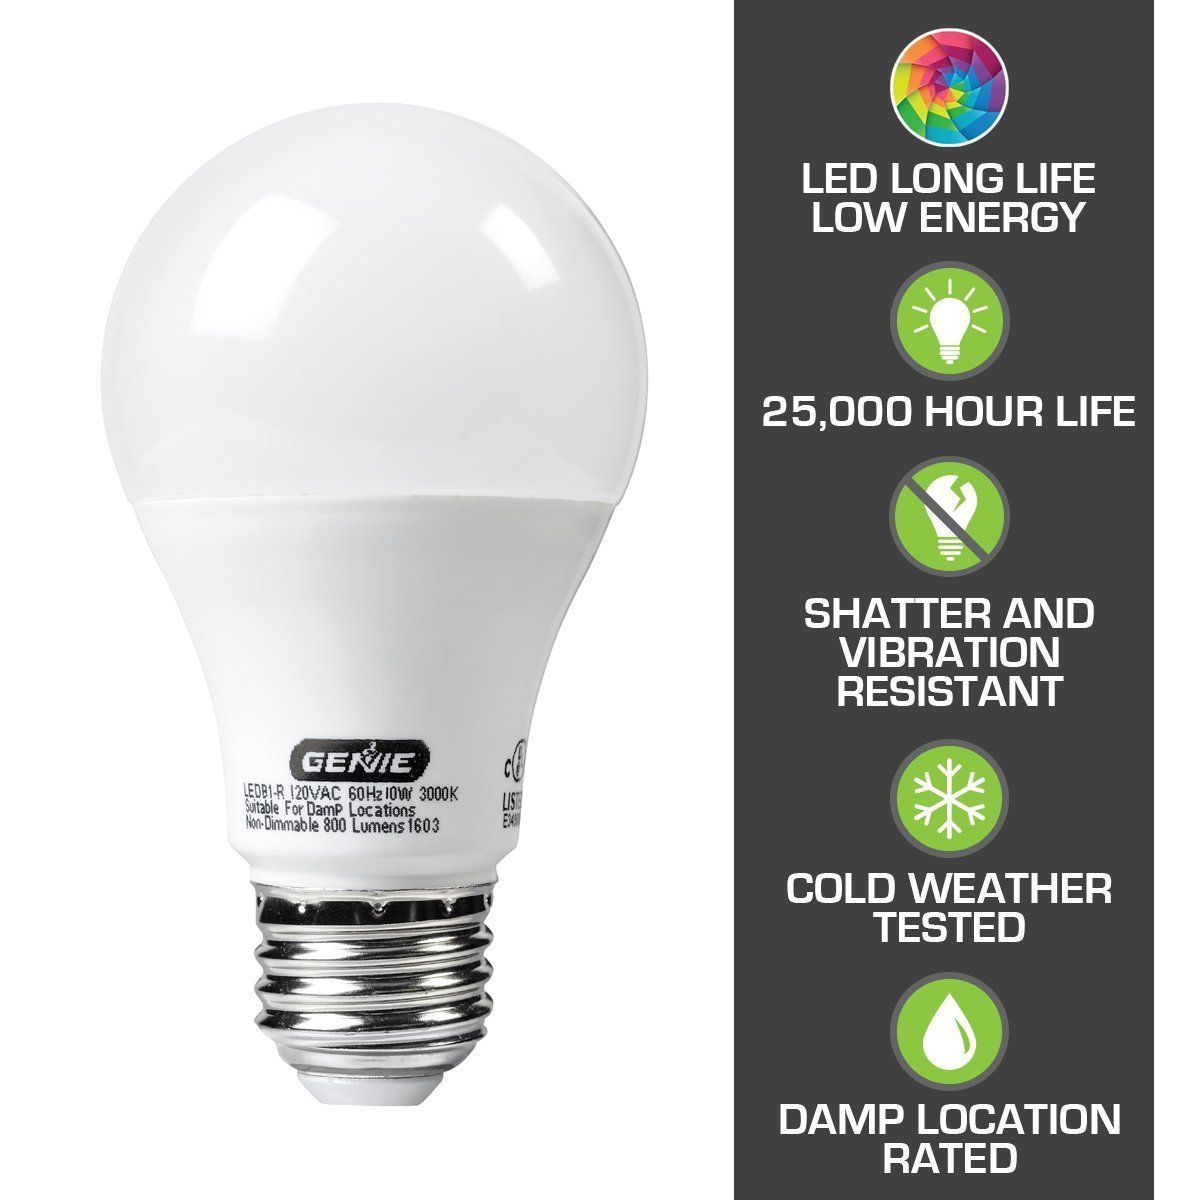 Genie Led Garage Door Opener Light Bulb 60 Watt 800 Lumens Made To Minimize Interference With Garage Door Openers Comp Led Garage Lights Led Light Bulbs Bulb